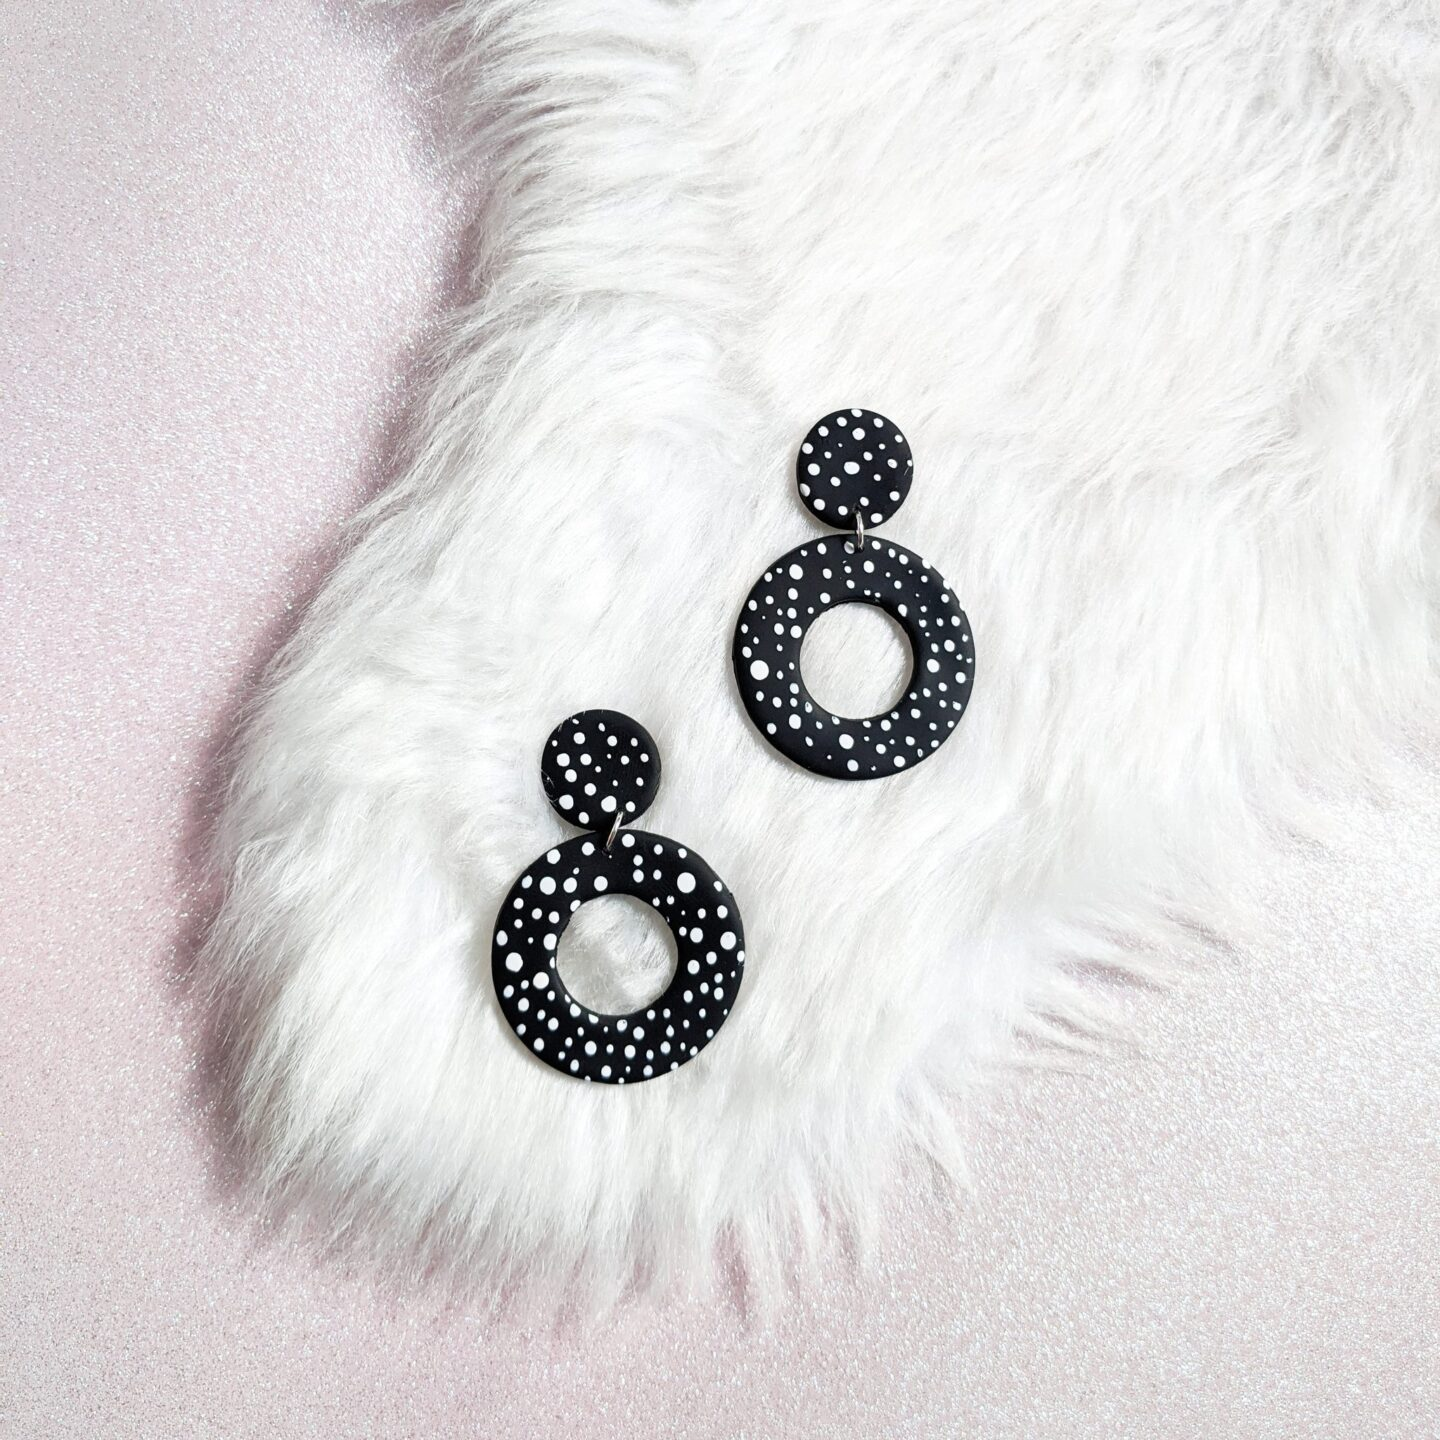 A photo of black and white polka dot dangly earrings on a faux fur rug